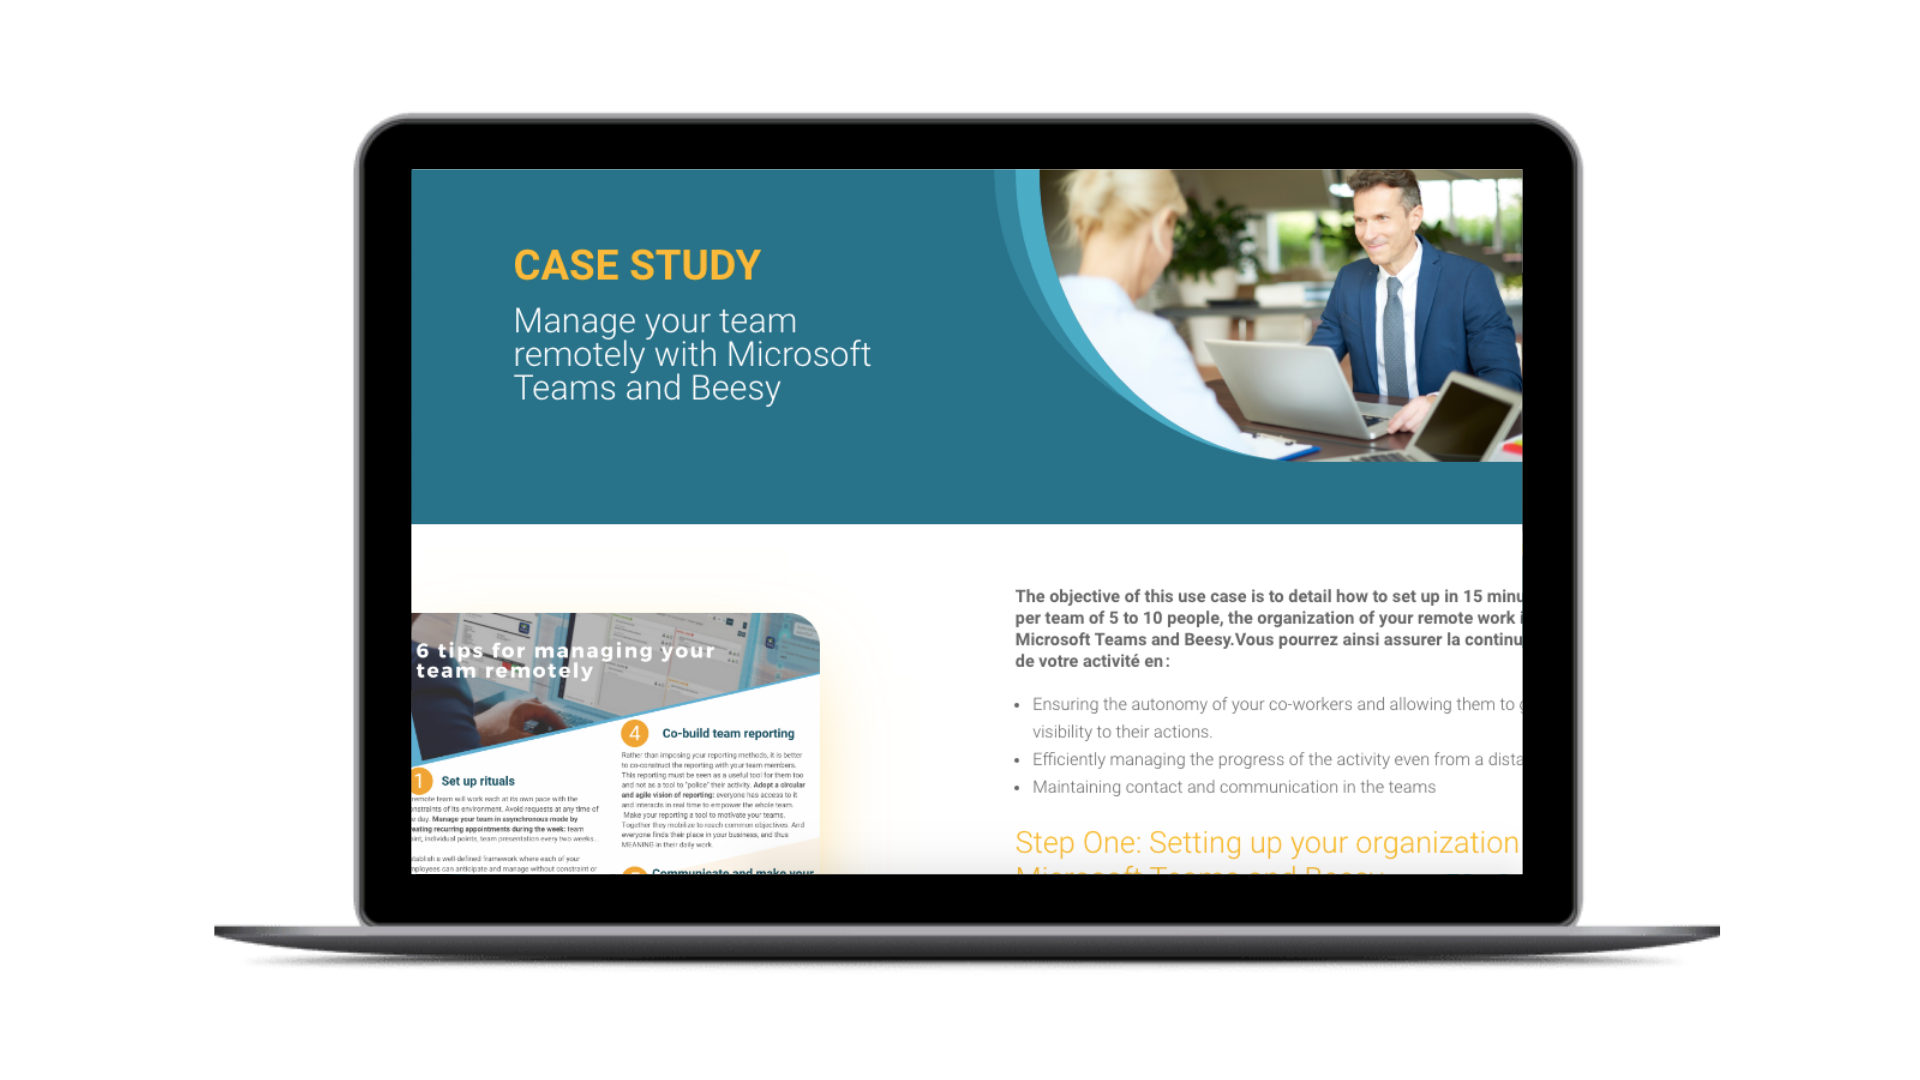 CASE STUDY Manage your team remotely with Microsoft Teams and Beesy